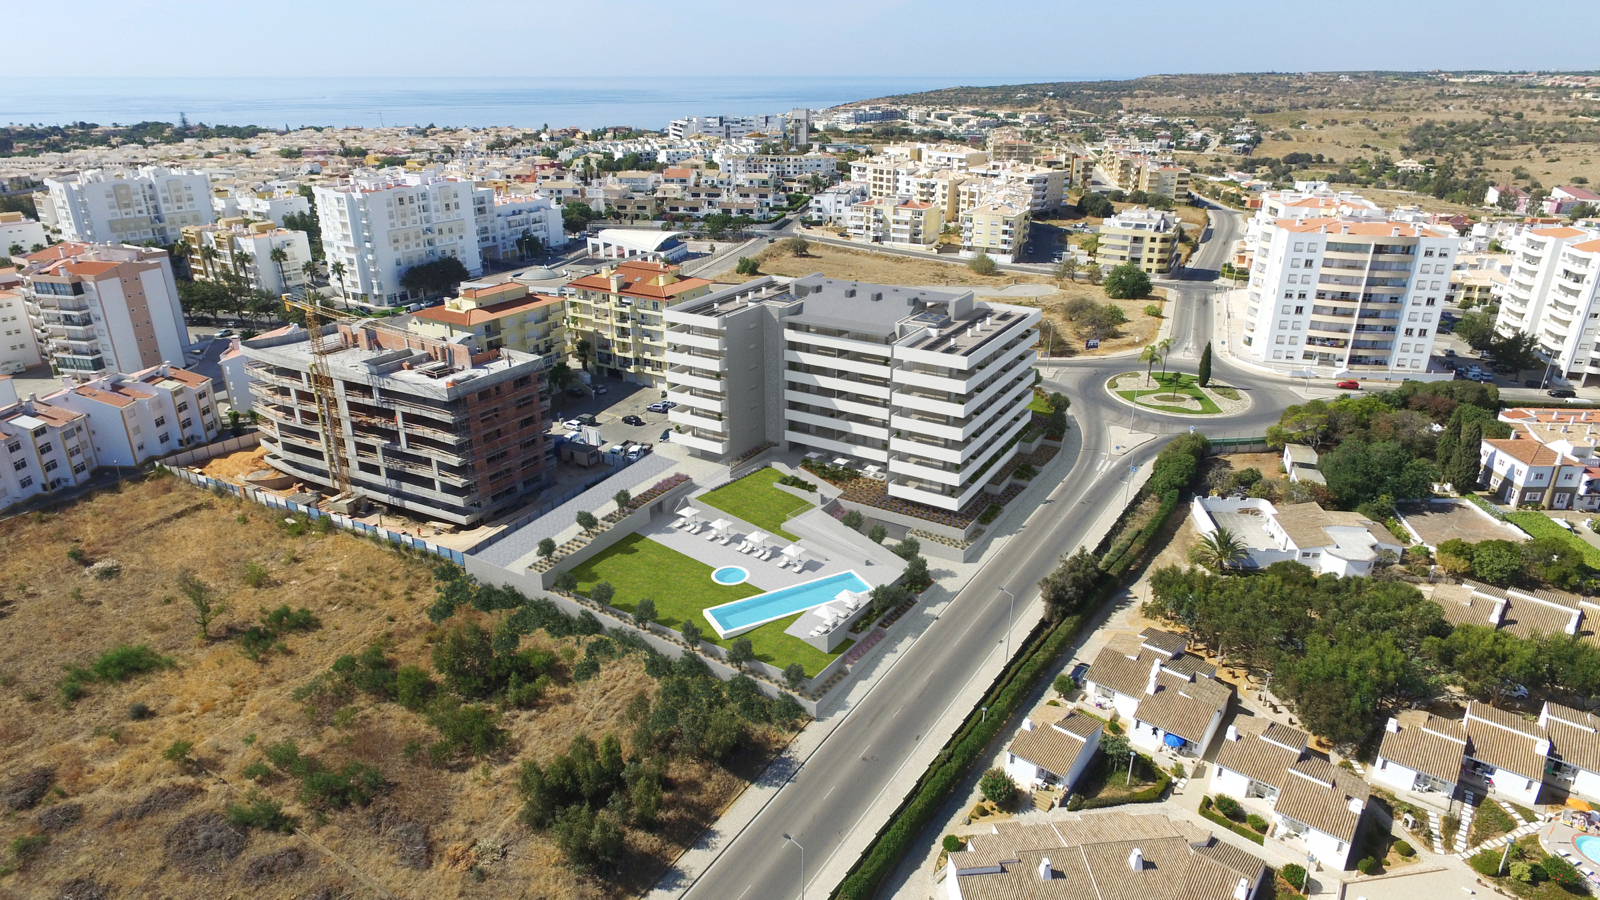 Off-plan 3 bedroom apartments with communal pool and sea views, Lagos, West Algarve | LG1190 Situated in walking distance of the historic city of Lagos and close to Porto do Mos beach this brand new development will be totally complete in 2021. 3 Bedroom Apartments and 3 Bedroom Duplex apartments with a communal pool, underground parking and sea views.